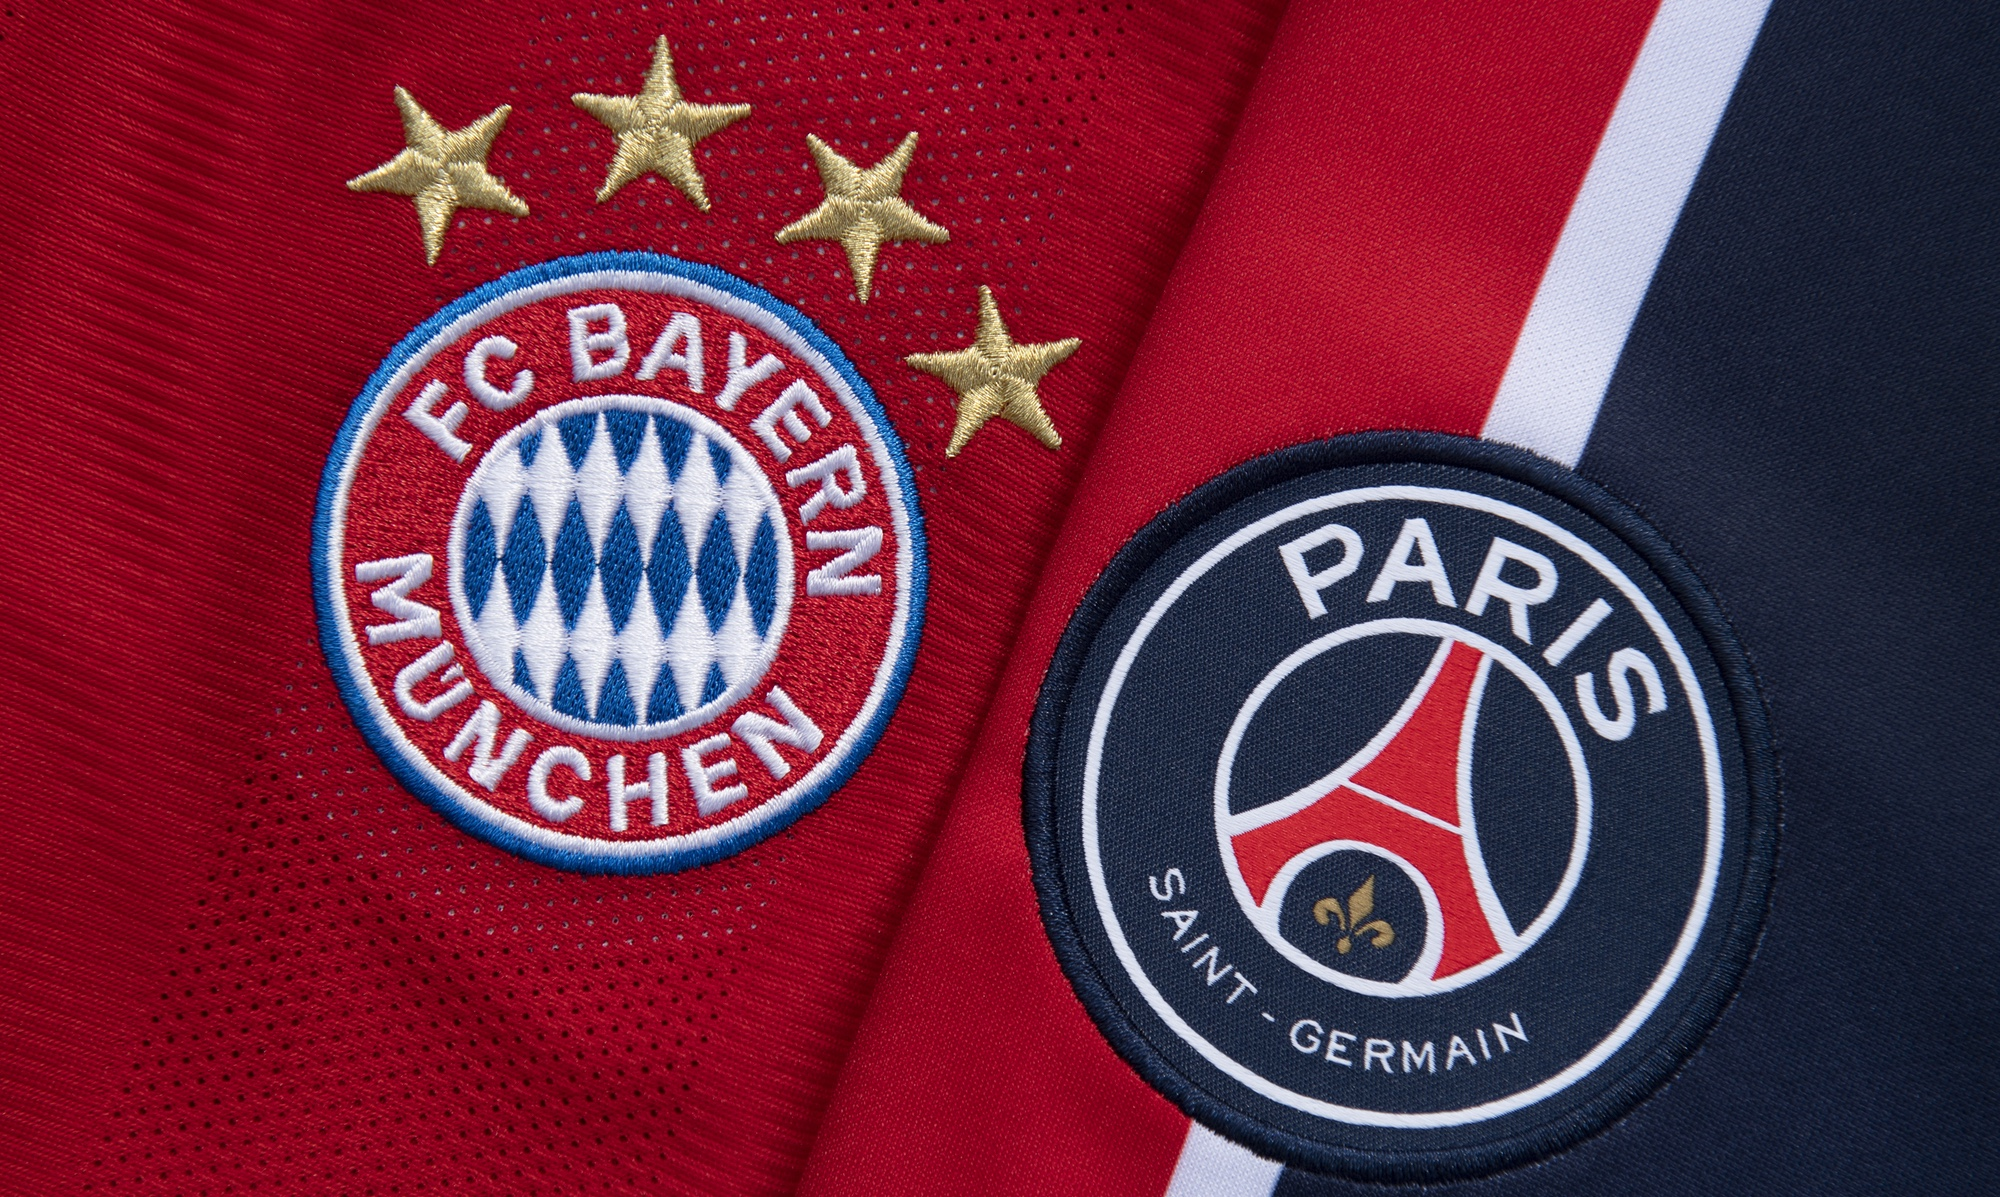 Psg Vs Bayern Live Stream How To Watch Champions League Final 2020 For Free Today Tom S Guide